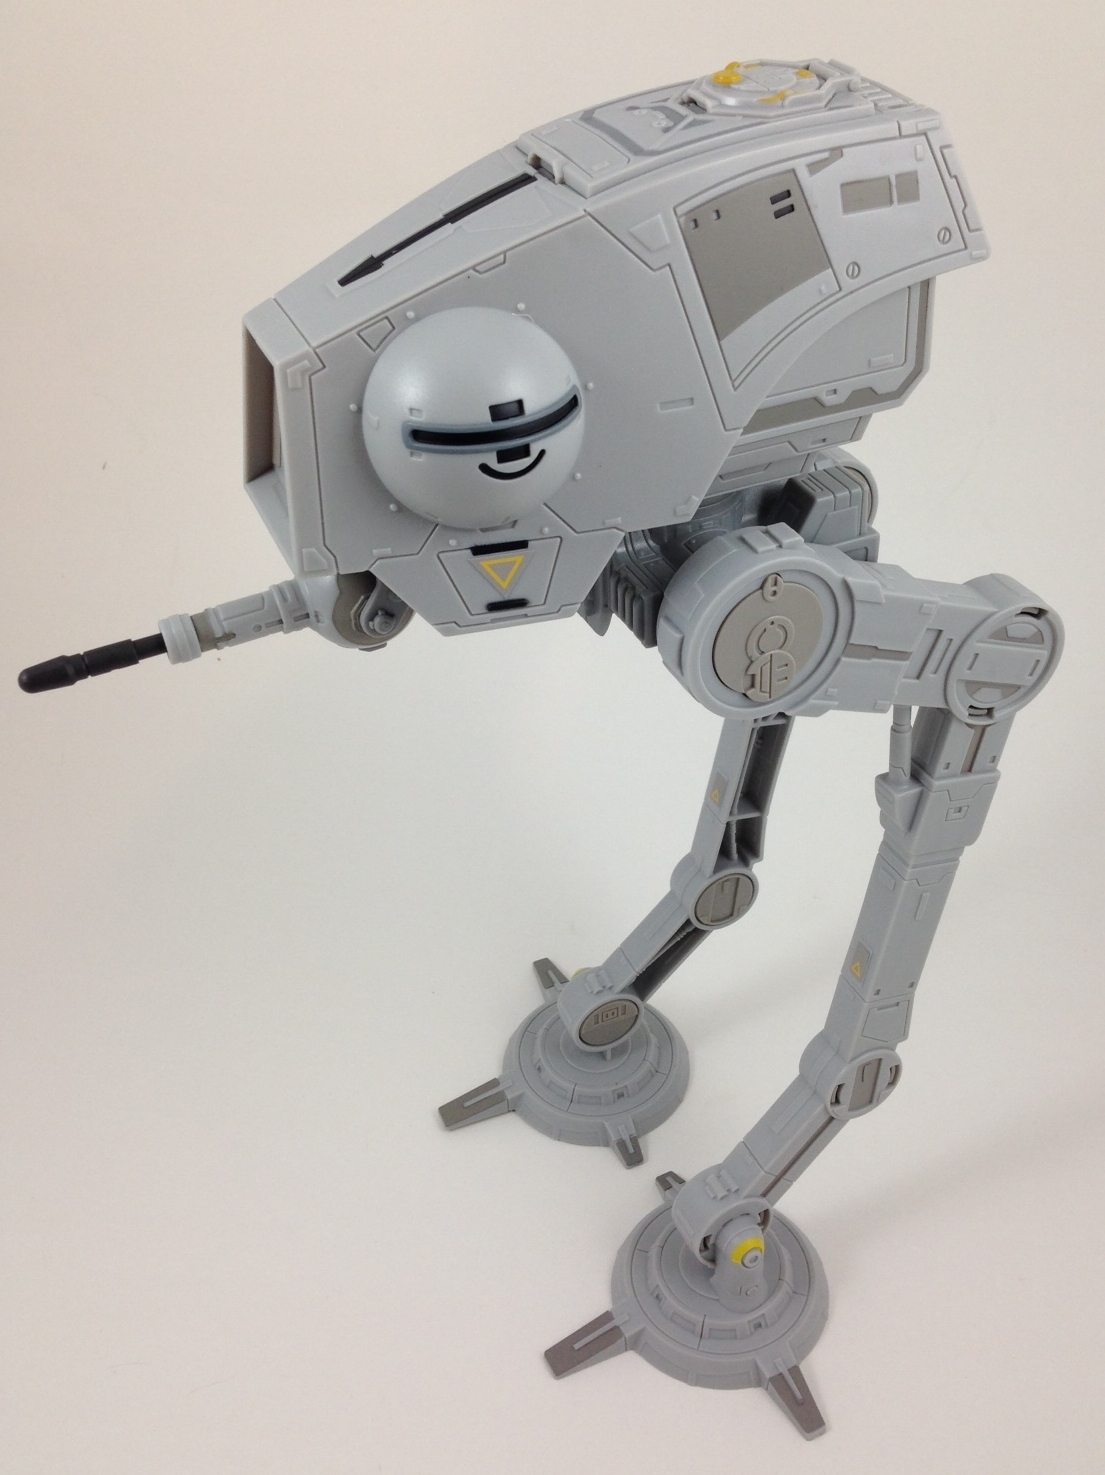 Product will be coming out from star wars rebels and the black series